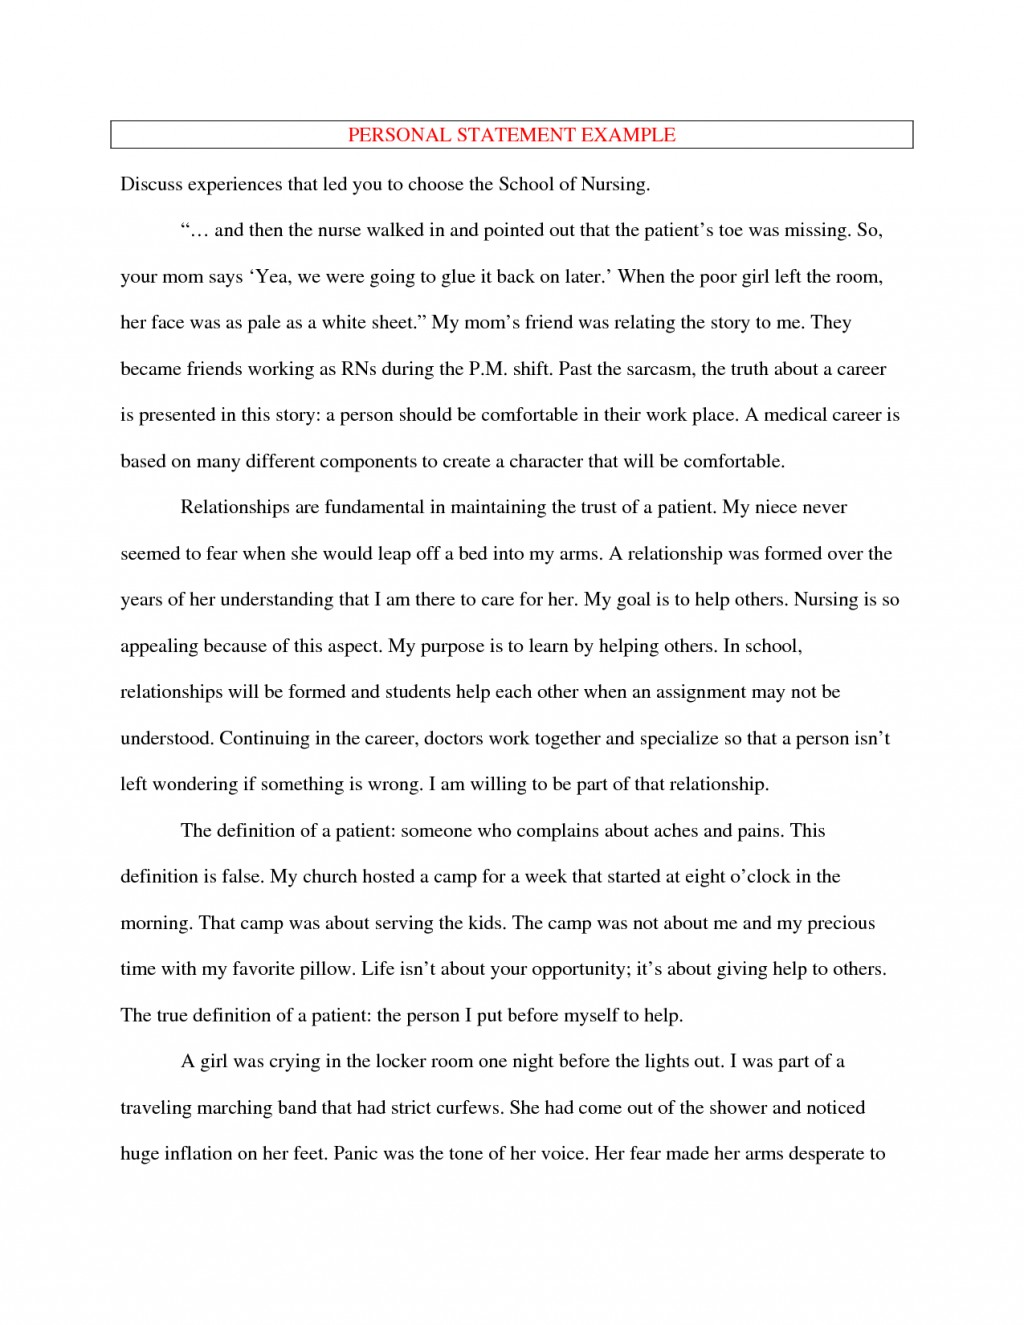 003 Essay Example Personal Submissions Law School Statement Format Template Best 2017 Submit To Buzzfeed Salon Large